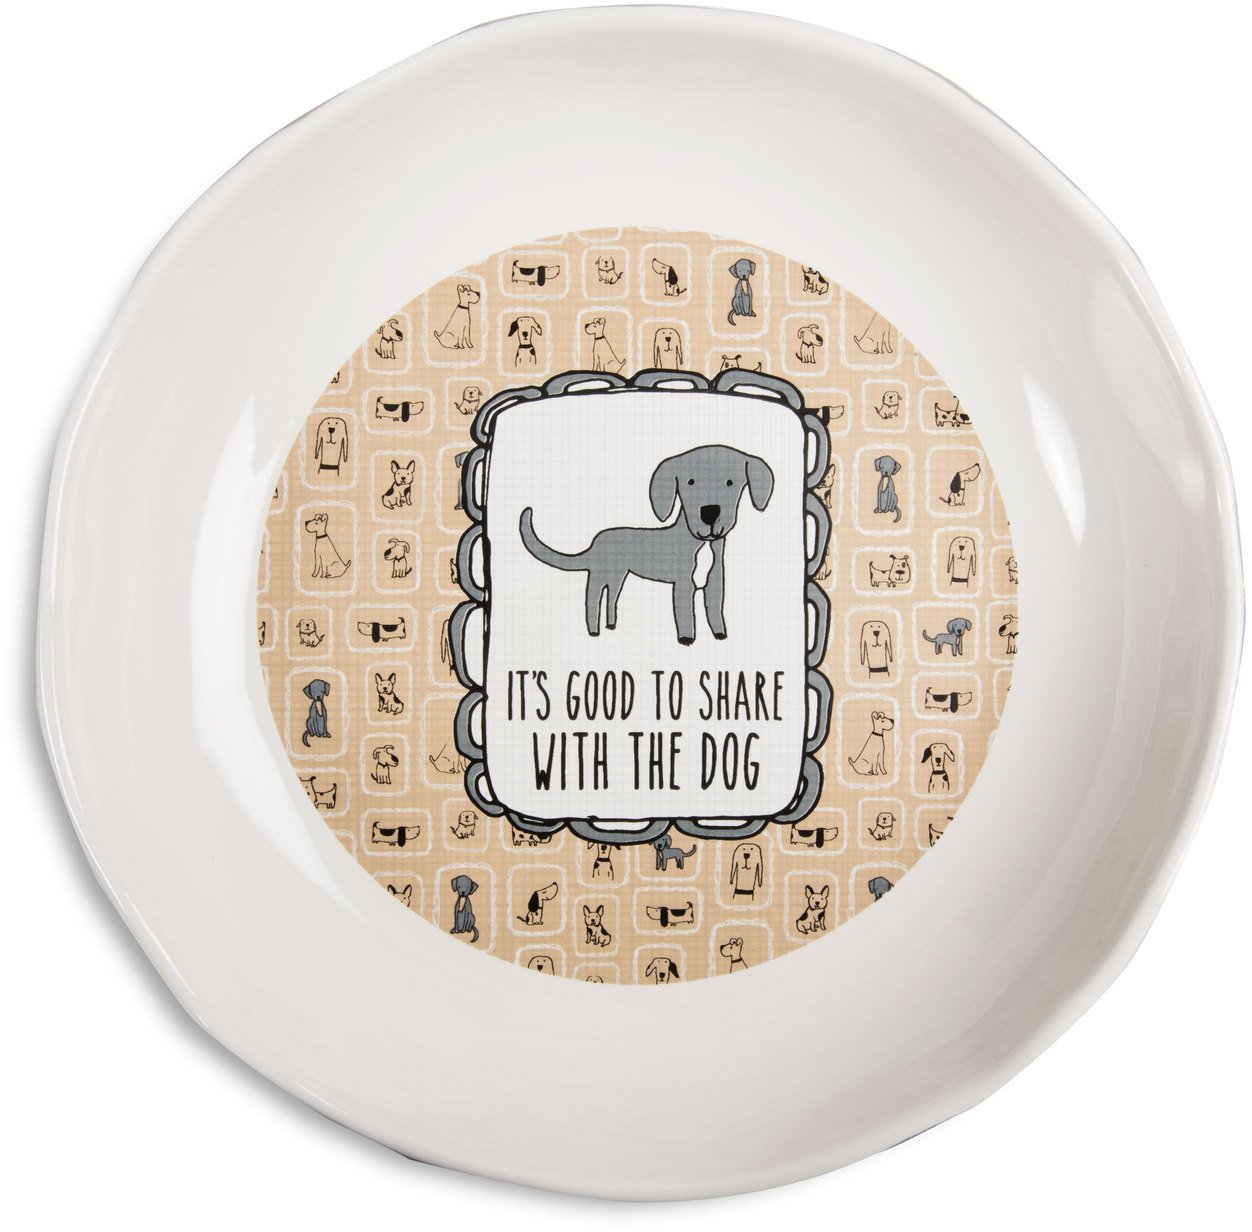 "Pavilion - ""Its Good To Share With The Dog"" Shallow 2 Inch Tall Ceramic Dog Food and Water Dish"